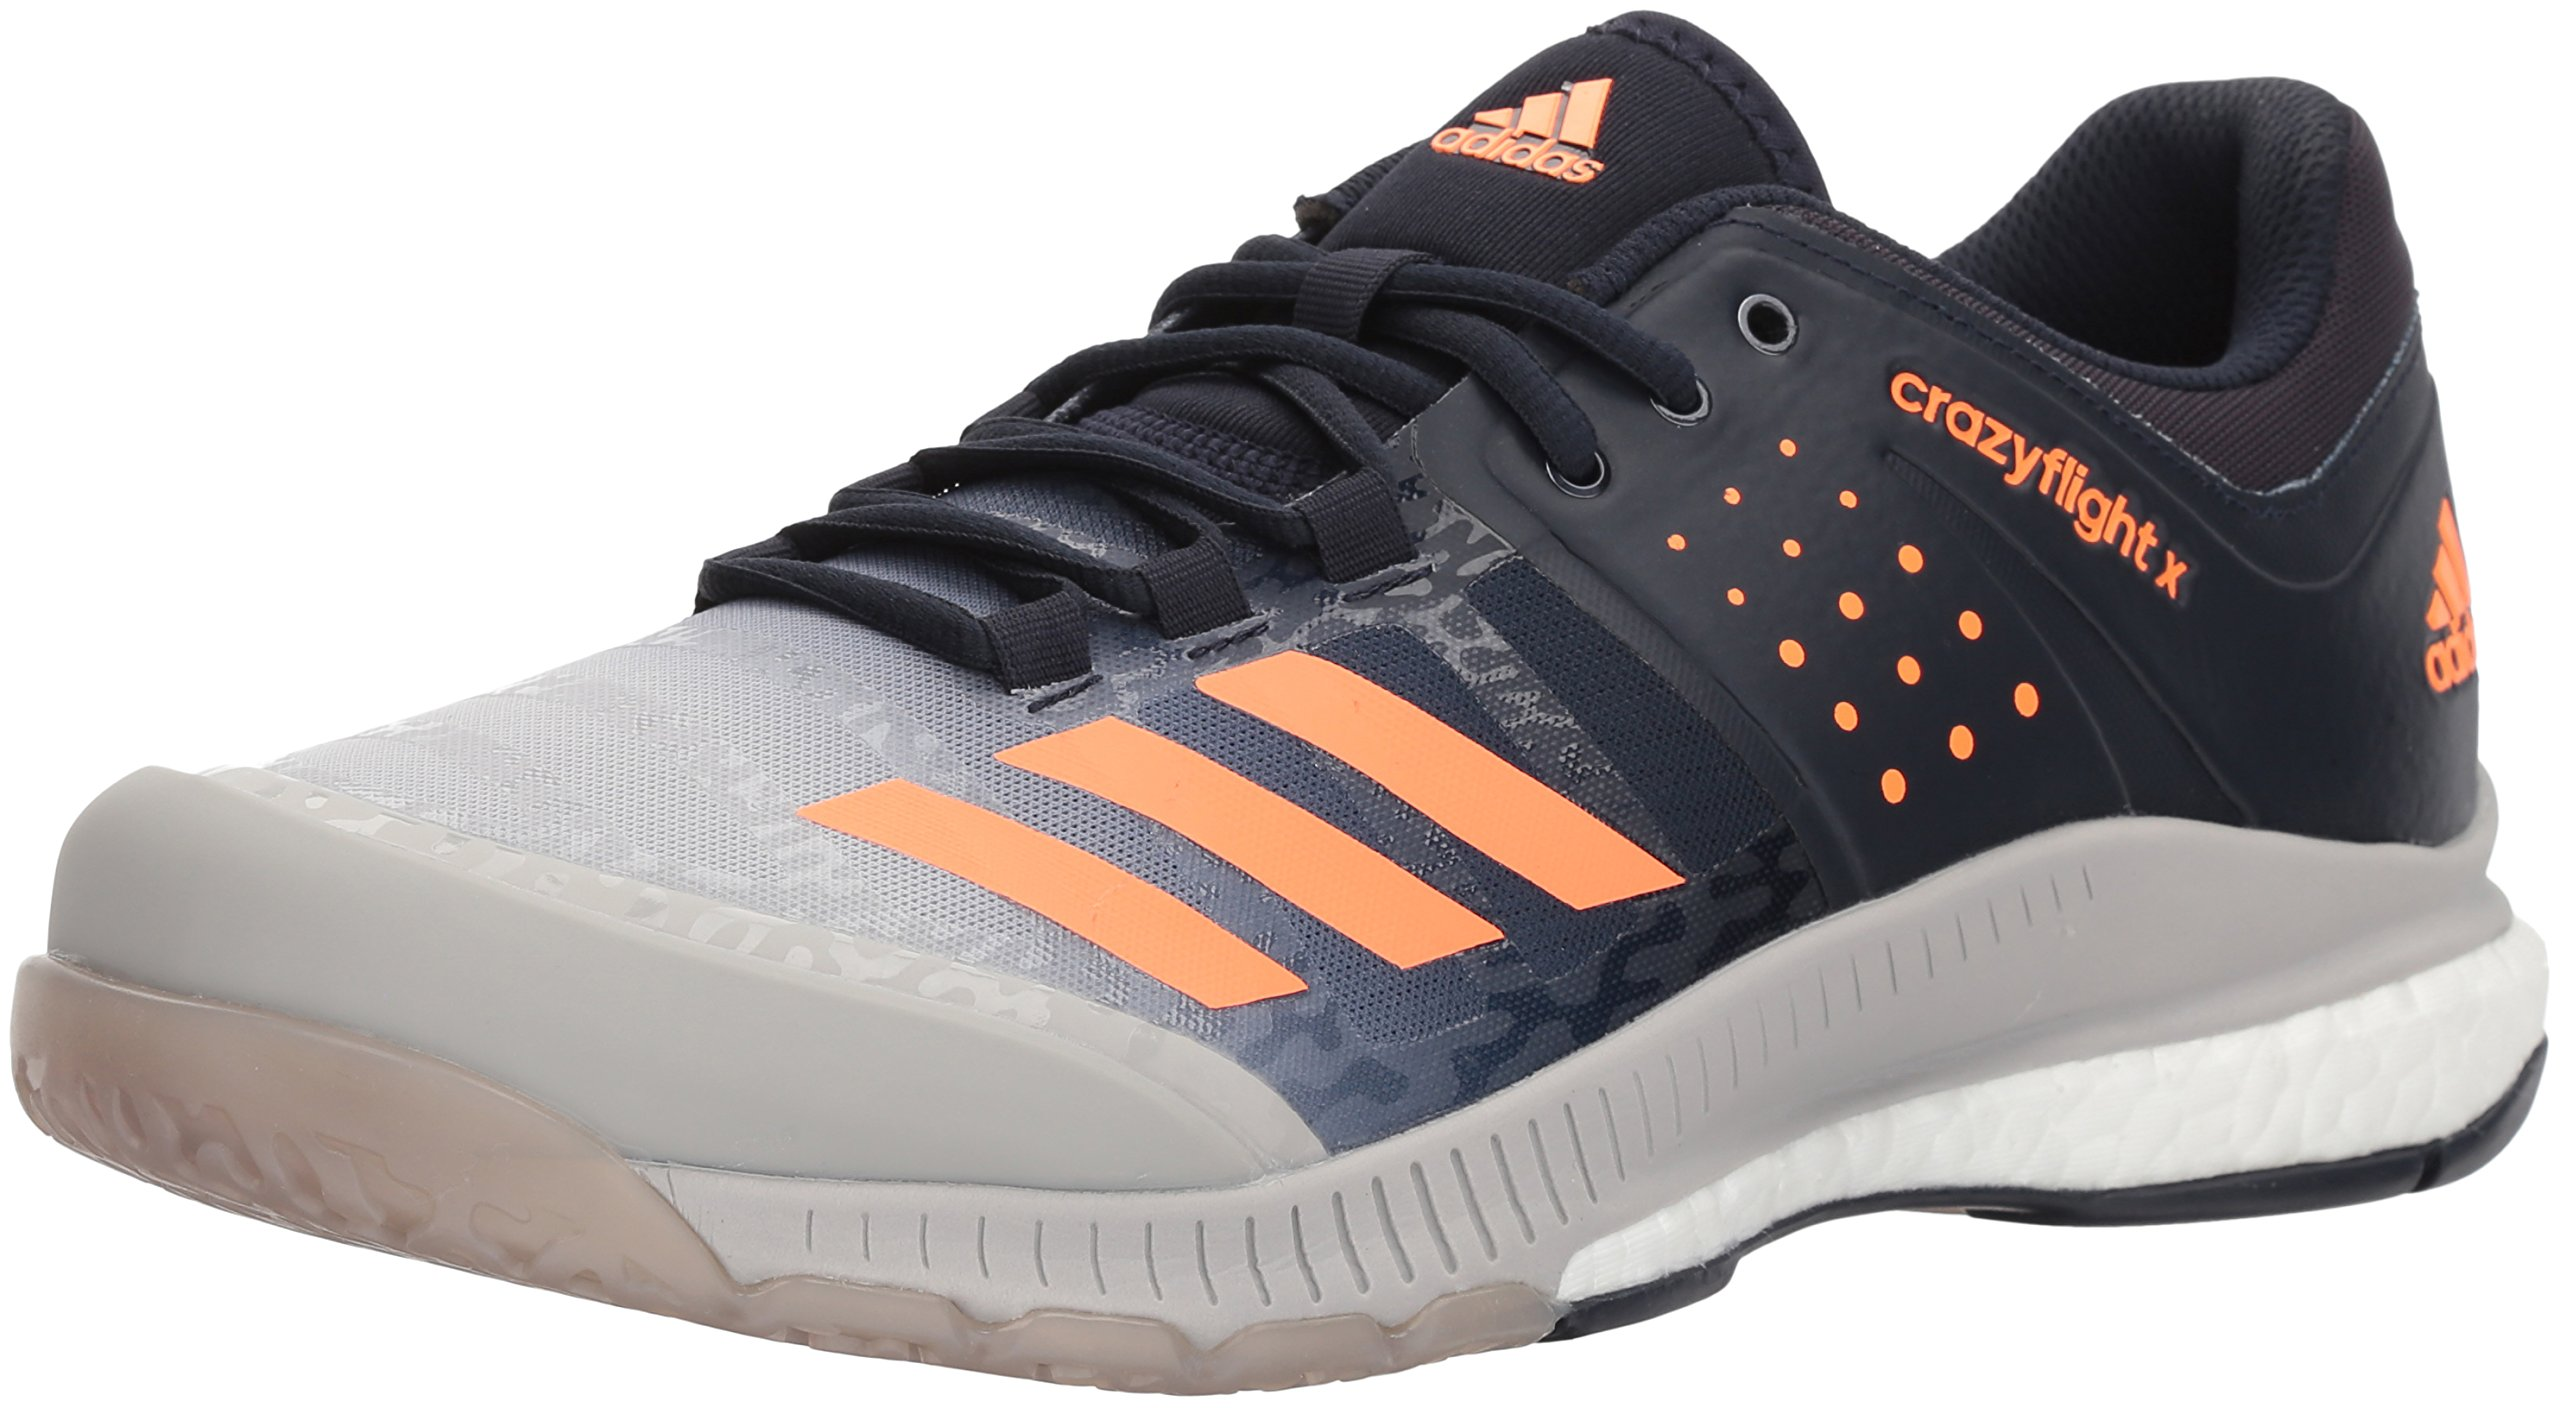 adidas Men's Crazyflight X Volleyball Shoe, Legend Ink/Hi-Res Orange/Grey Two, 11.5 M US by adidas